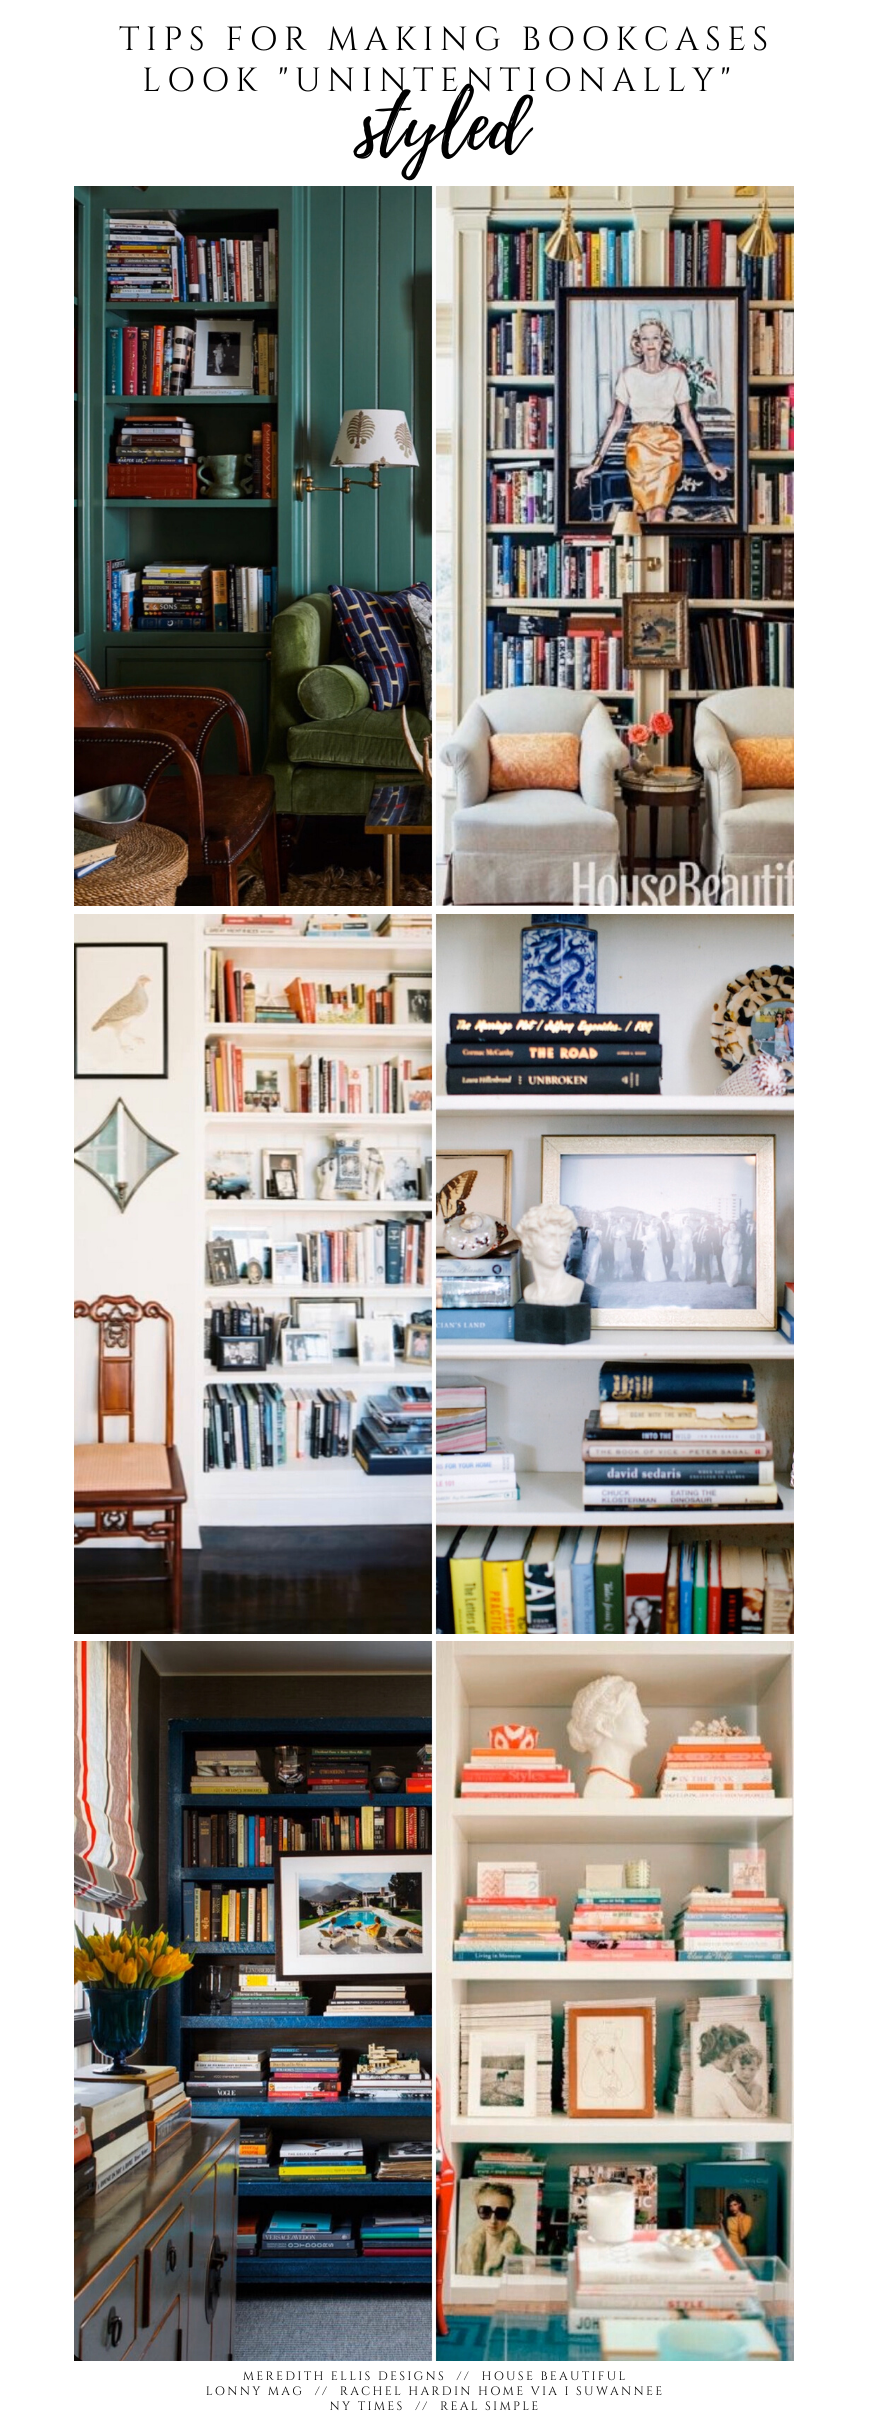 Unintentionally Styled Bookshelves TIPS